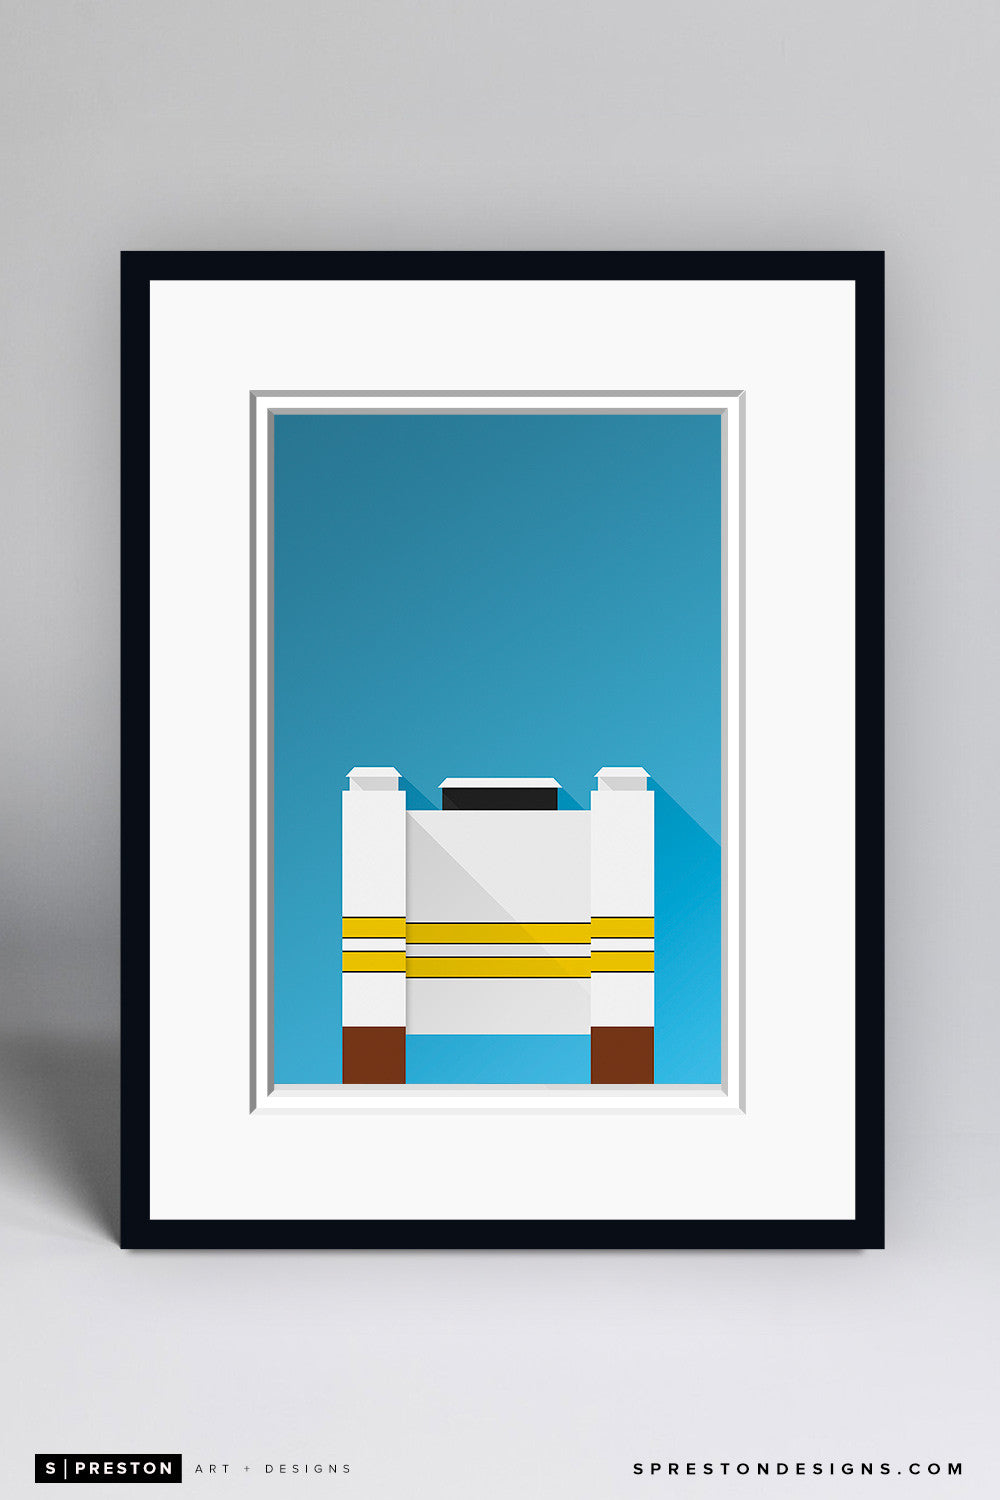 Minimalist Ross-Ade Stadium Art Print - Purdue University - S. Preston Art + Designs